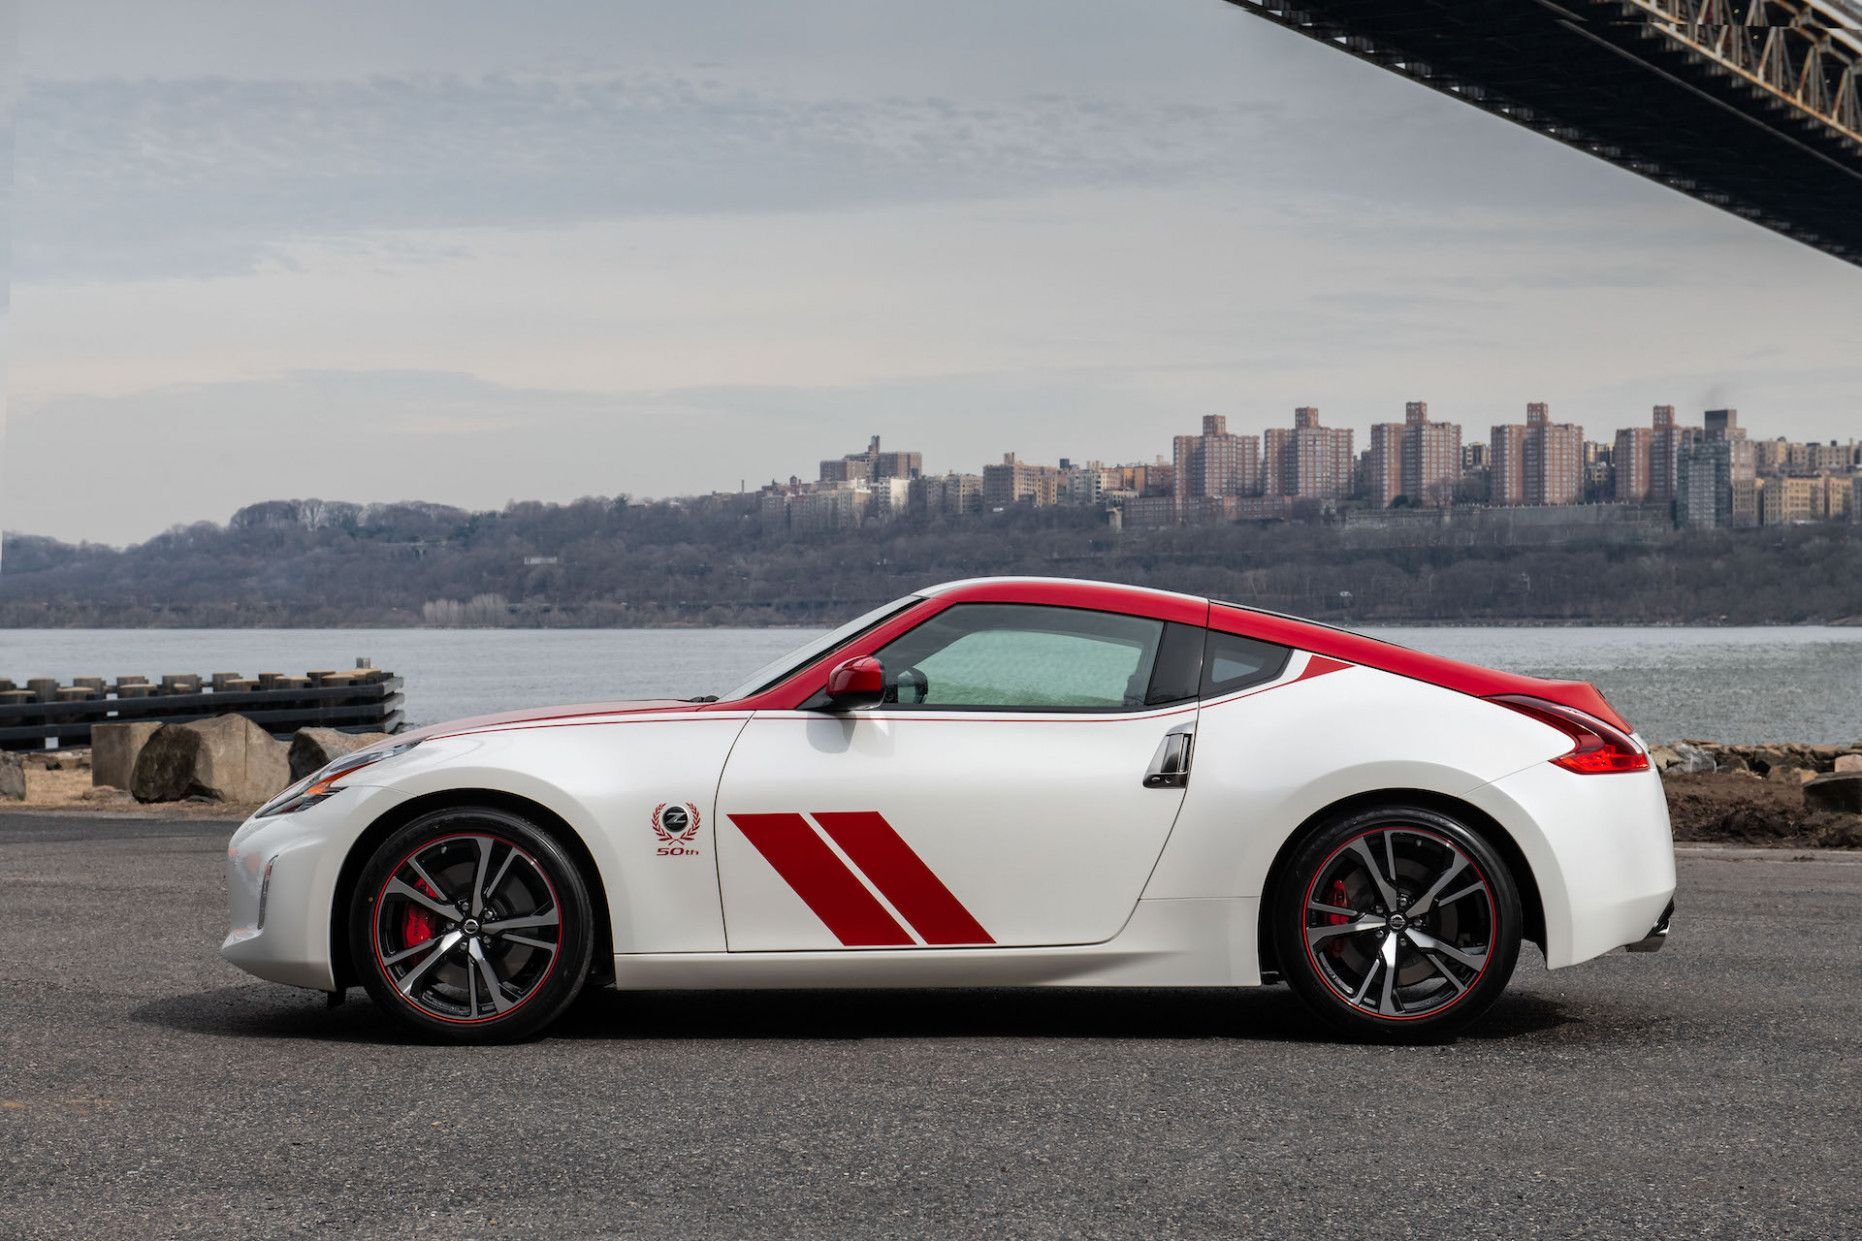 Nissan Z 2020 Price Review And Release Date In 2020 Nissan Z Nissan 370z Nissan